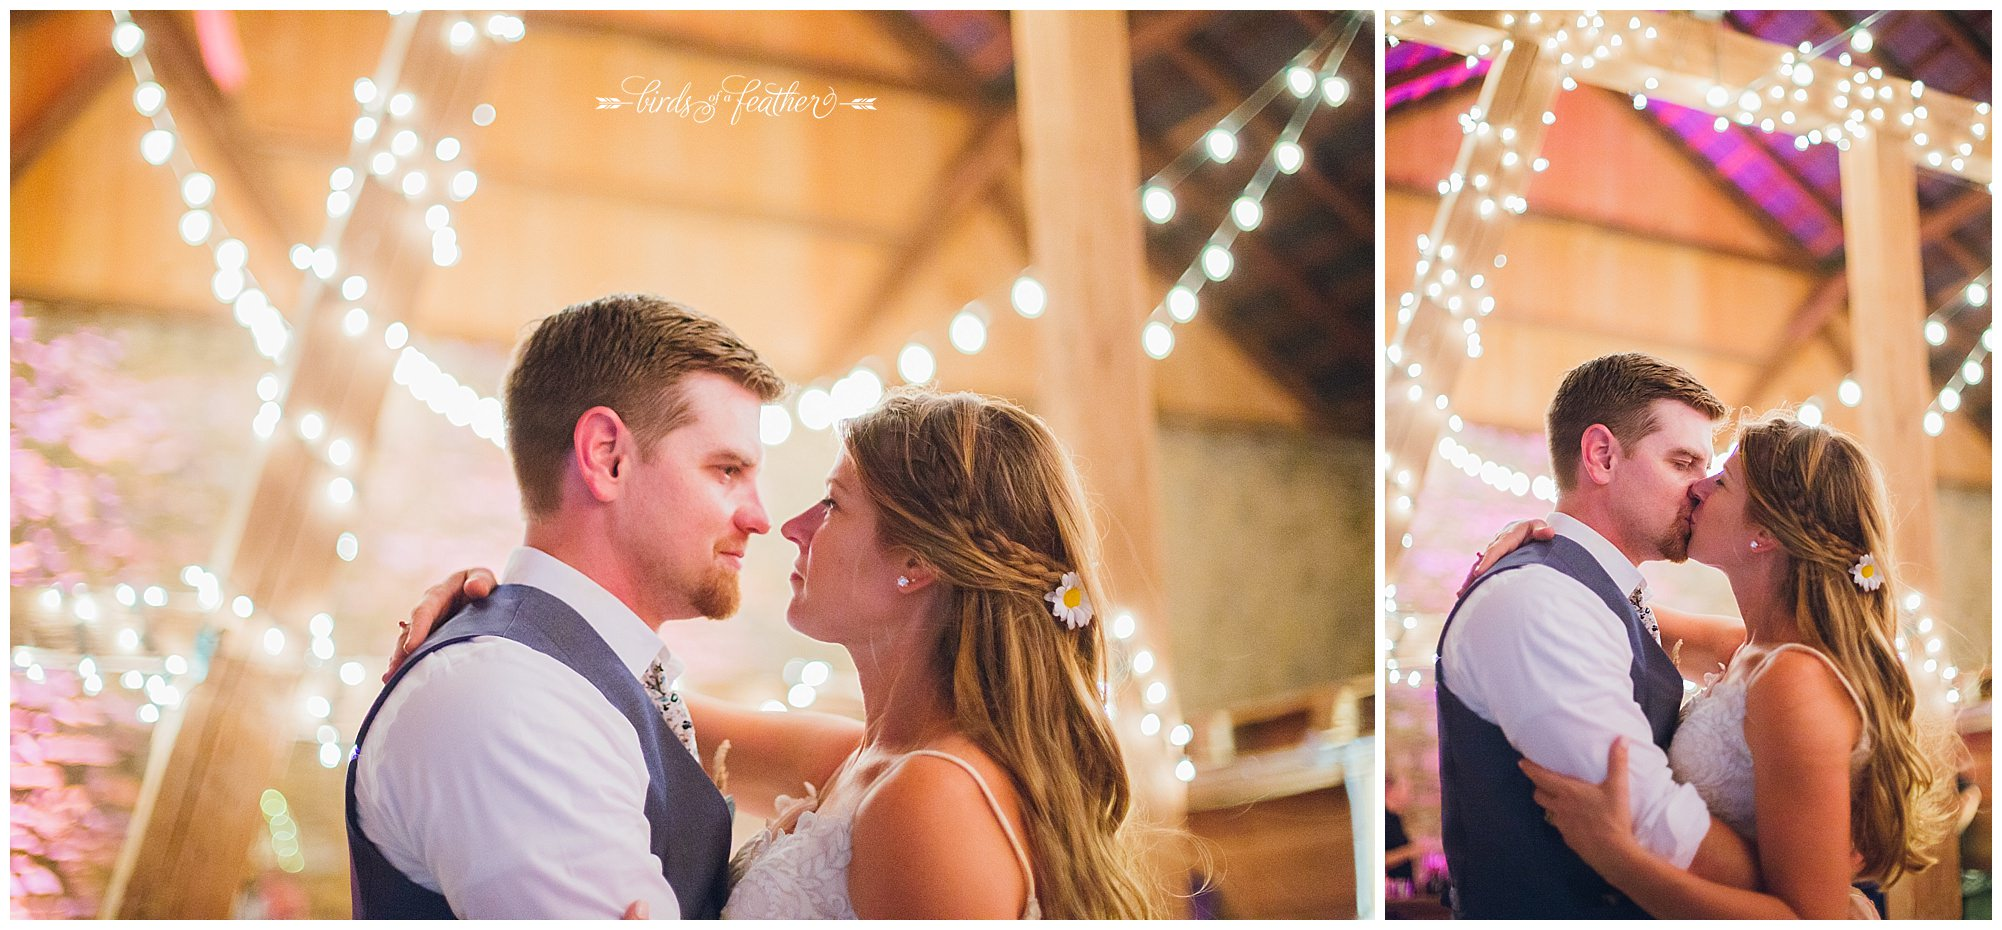 Birds of a Feather Photography Rodale Institute Kutztown Pa Wedding Photographer 46